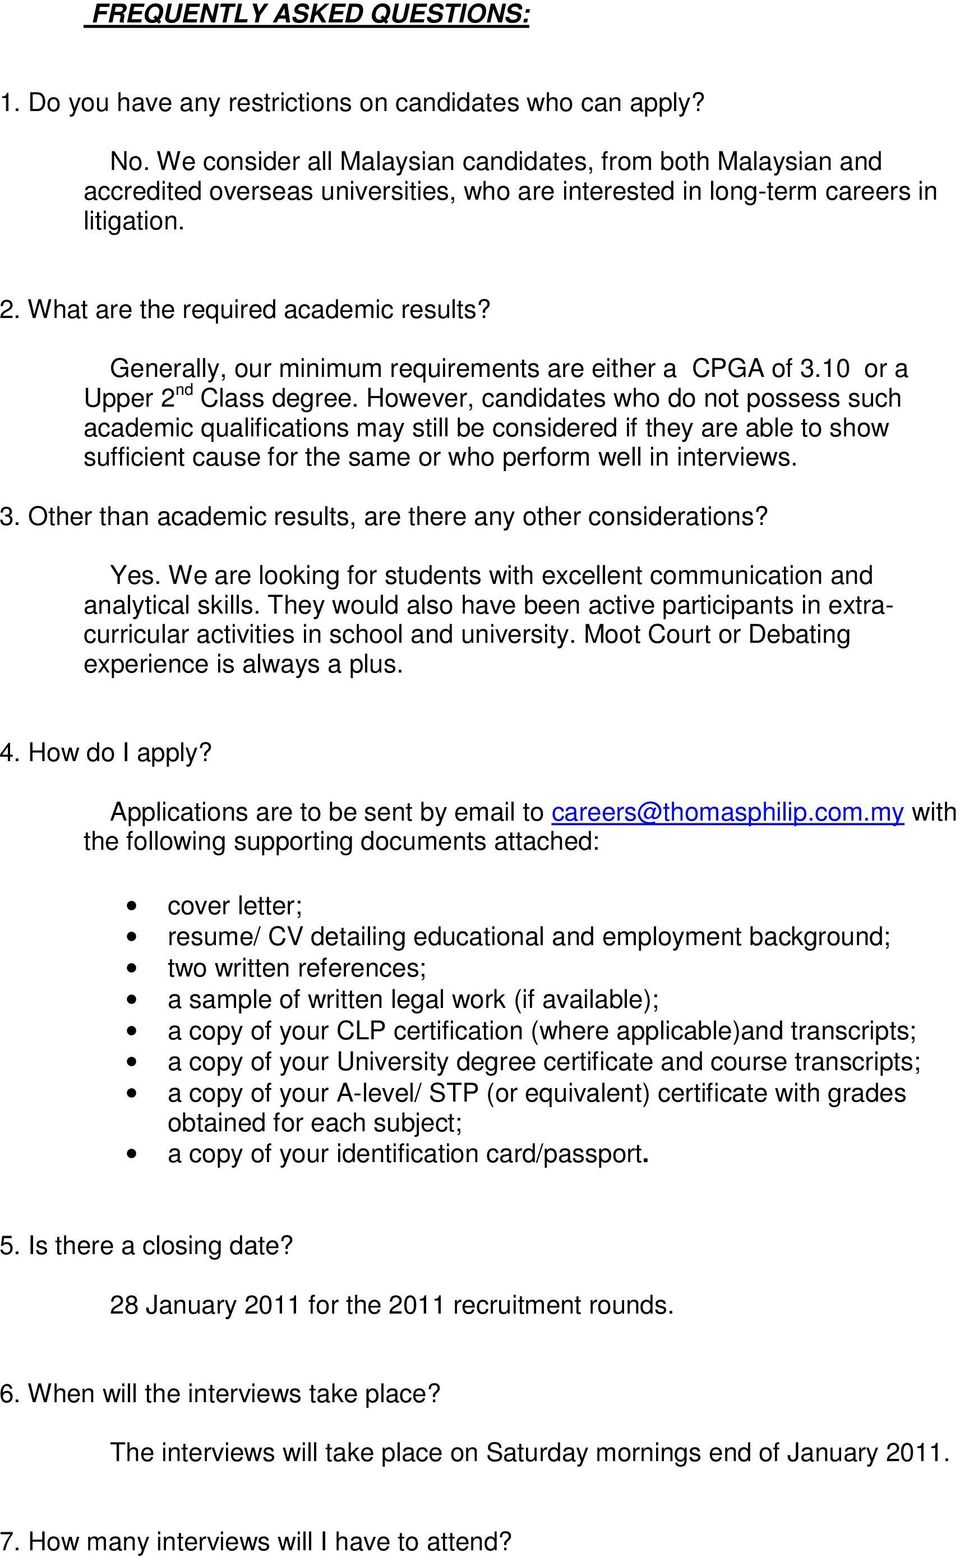 sample cover letter for chambering student malaysia